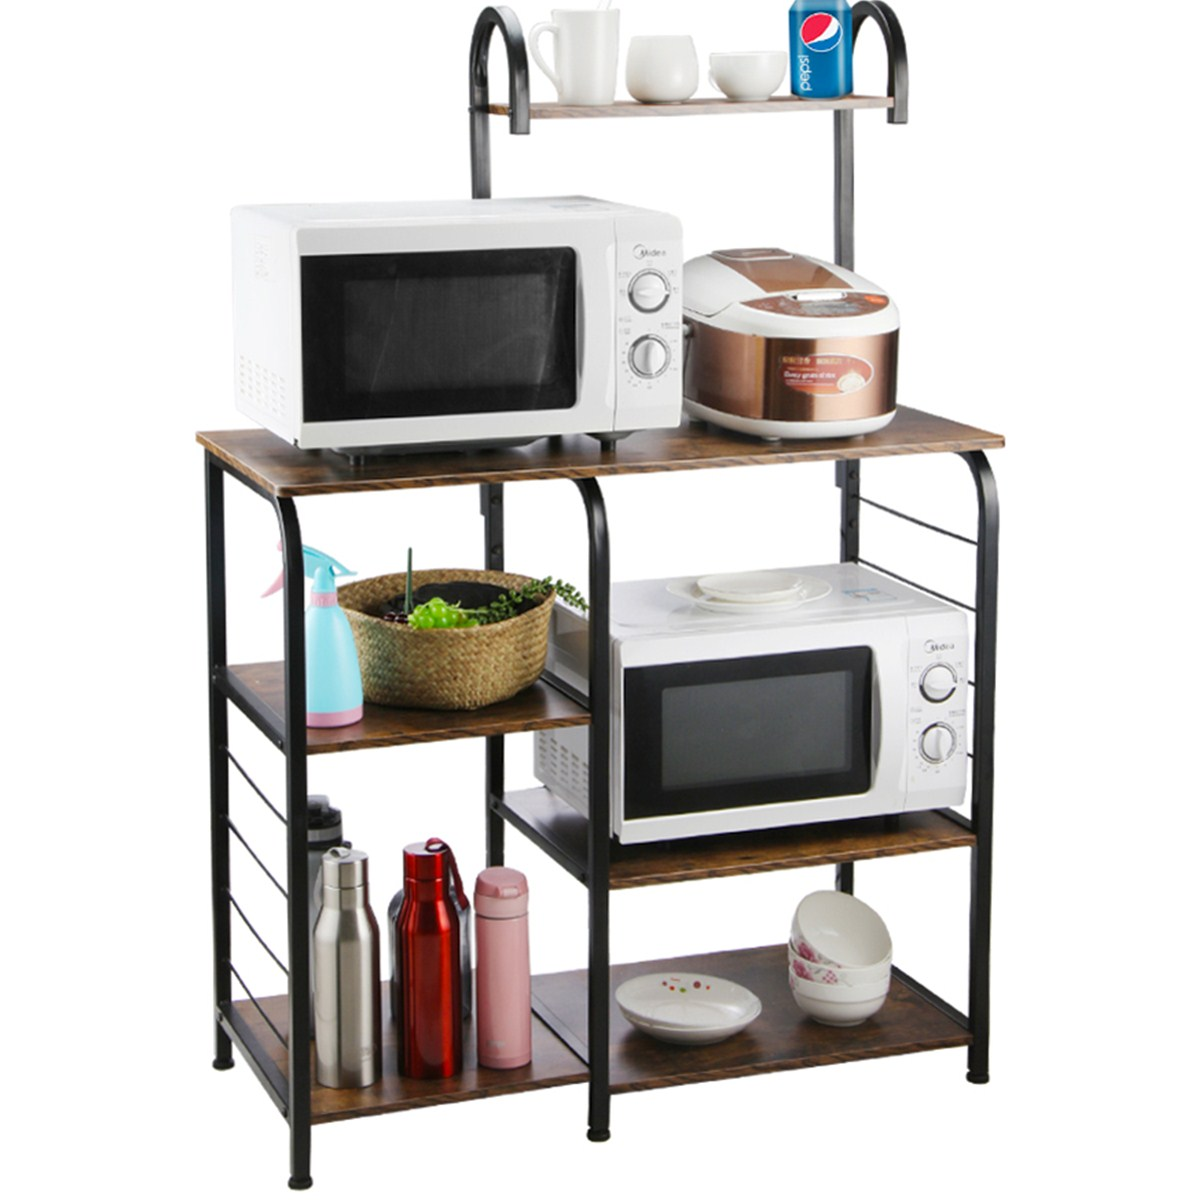 insma industrial kitchen bakers rack utility storage shelves microwave cart microwave oven stand for kitchen organizer rack rustic brown